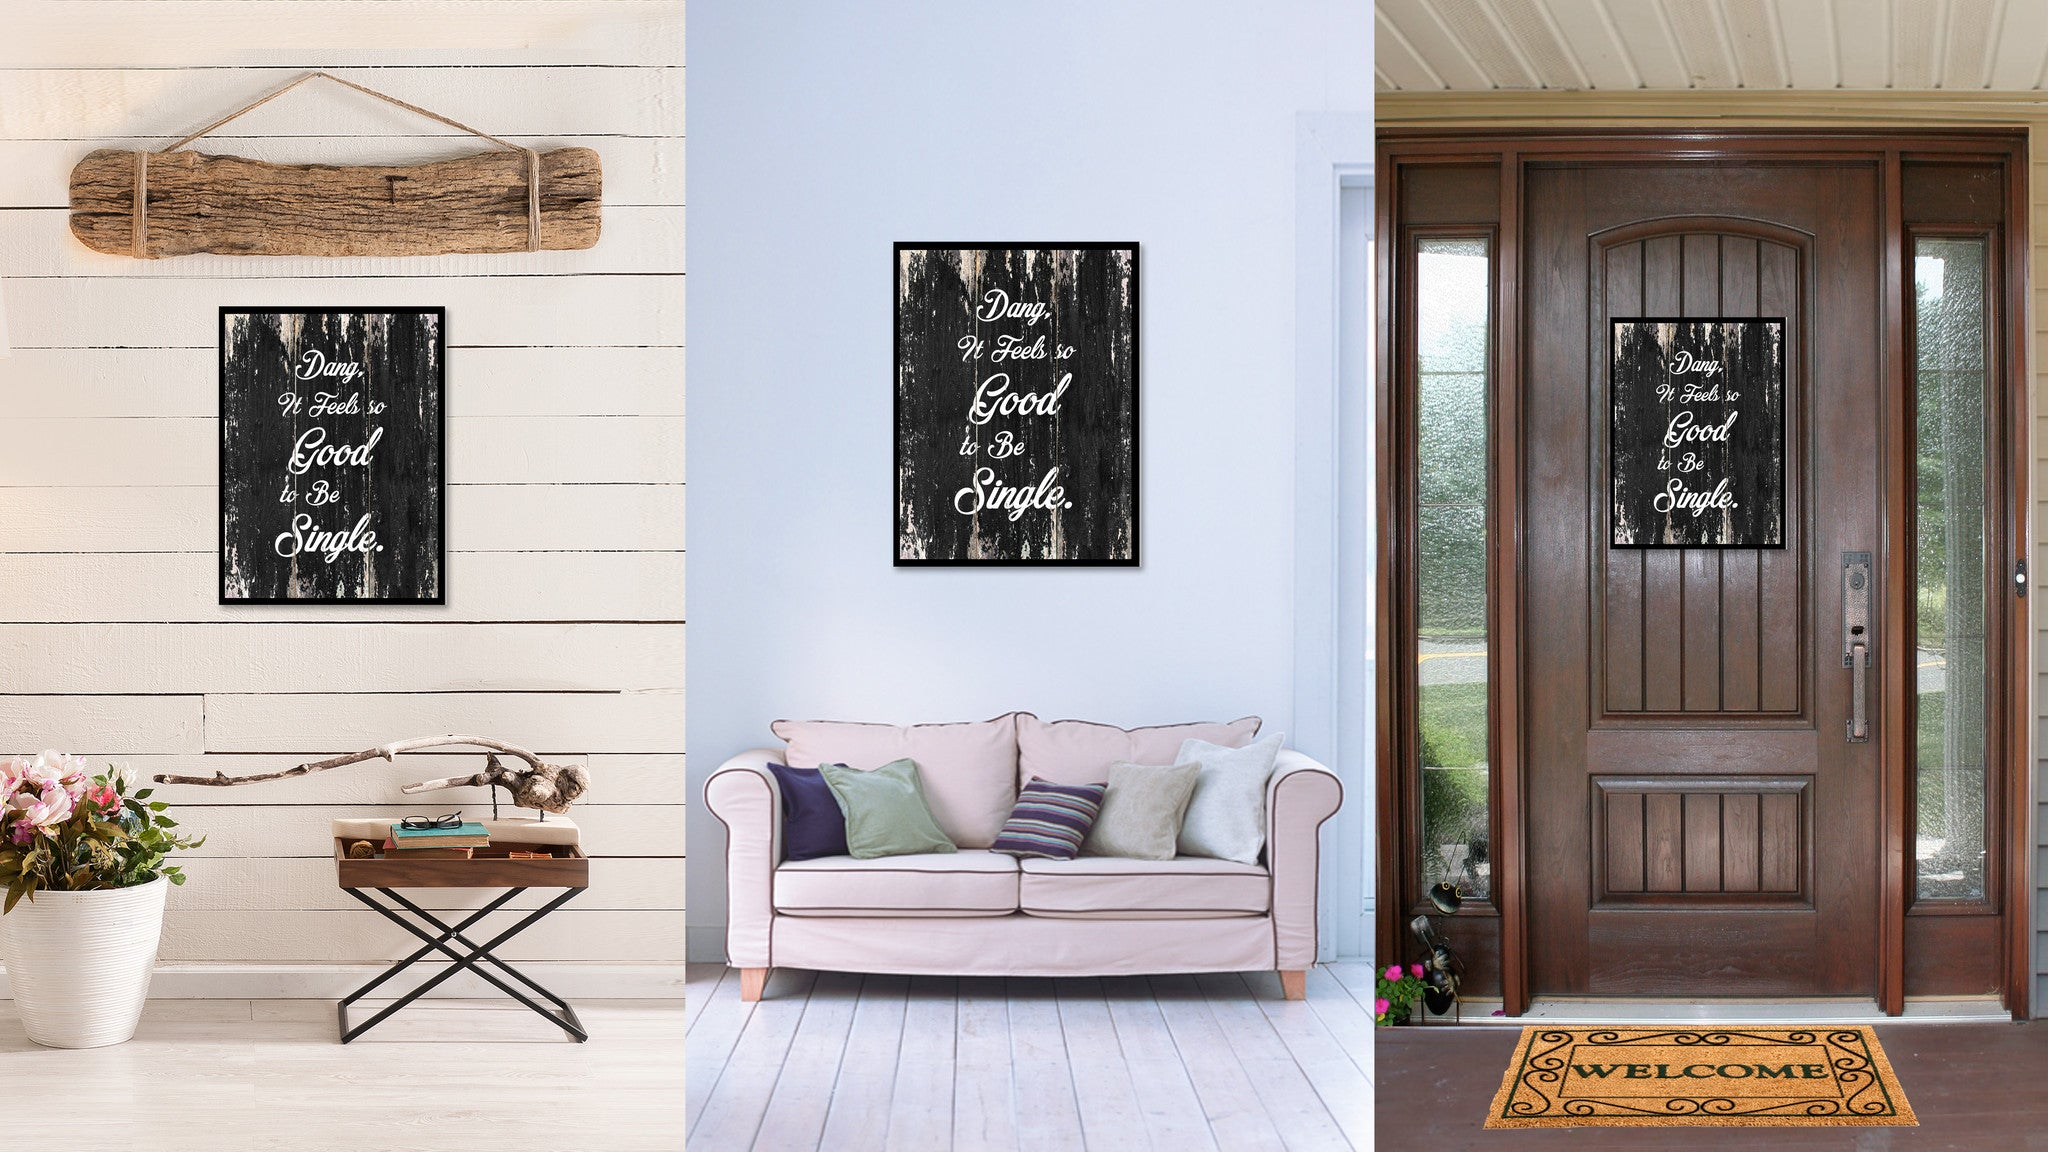 Dang it feels so good to be single Funny Quote Saying Canvas Print with Picture Frame Home Decor Wall Art